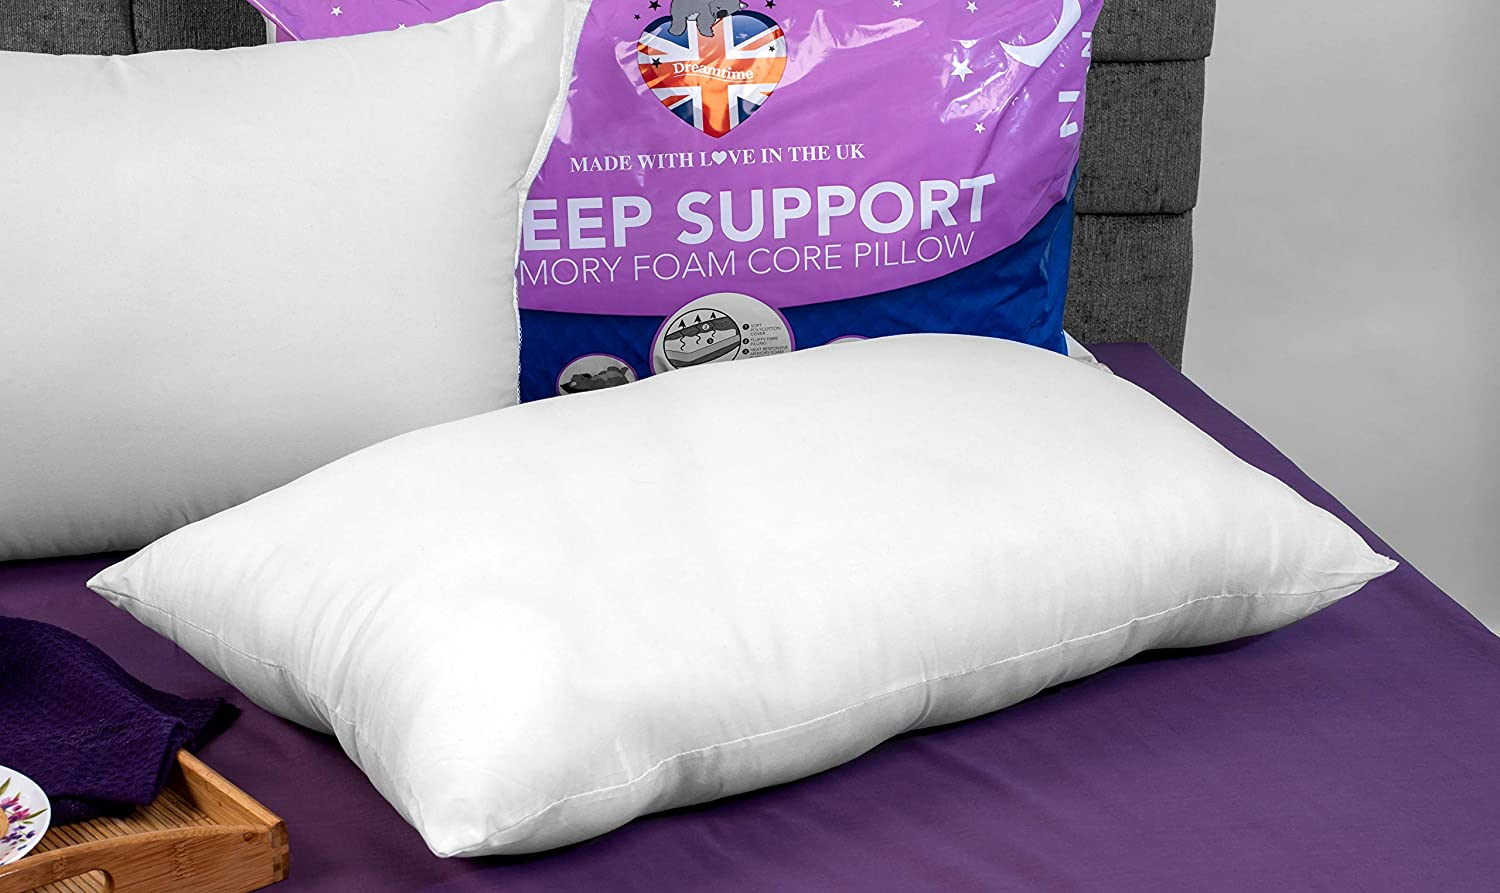 Set of 2 DreamTime MF02599UP Sleep Support Memory Foam Core Pillows